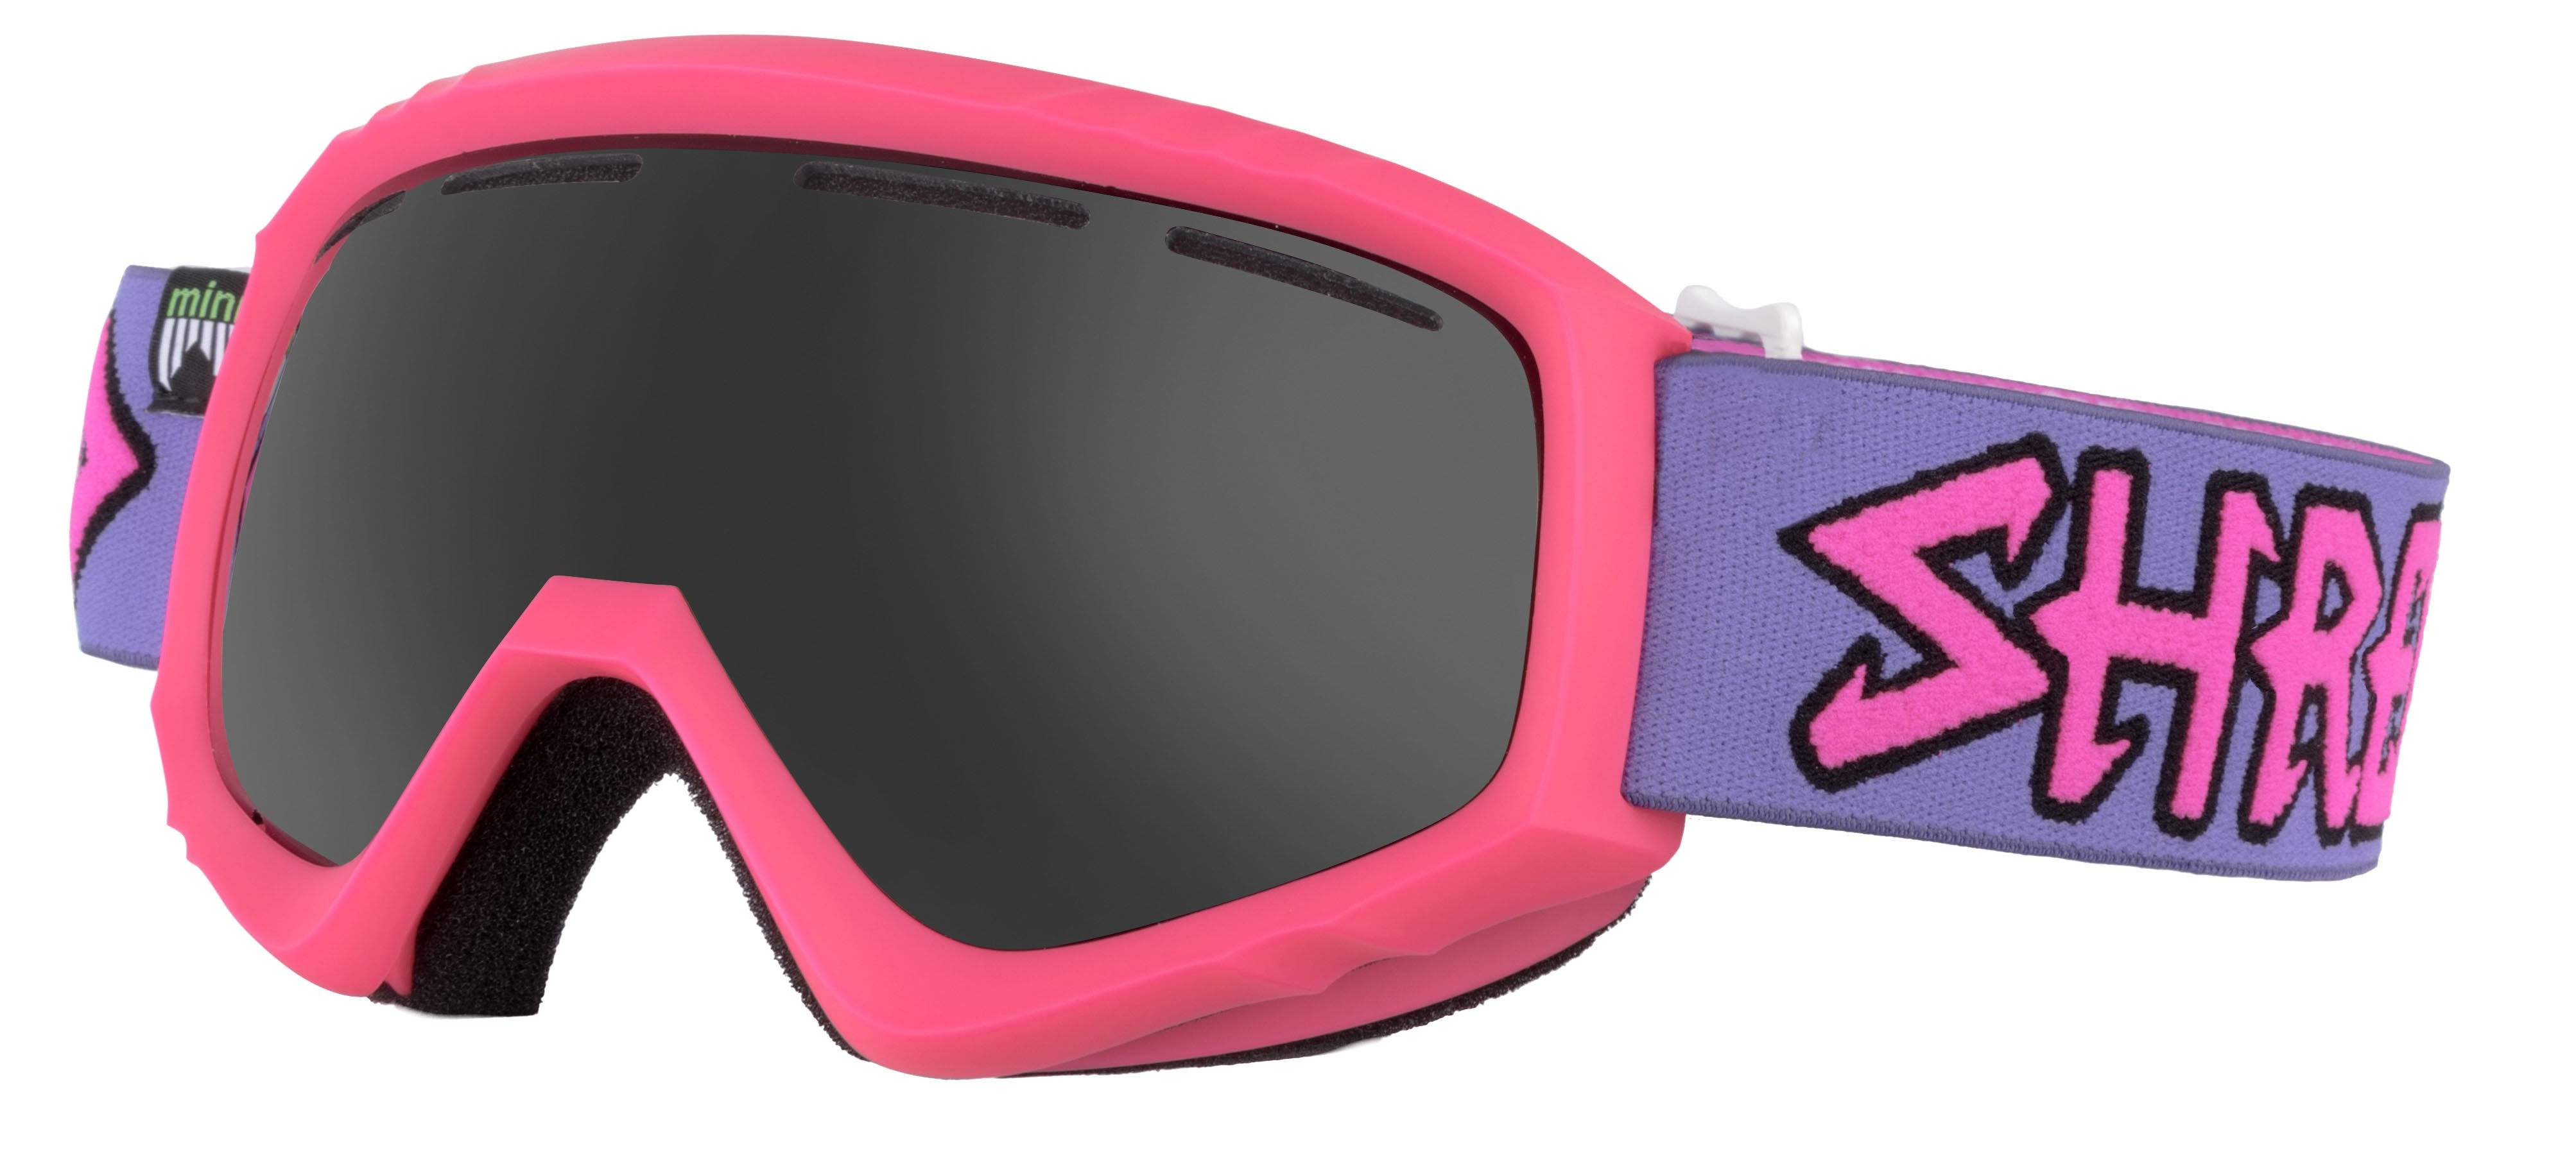 Shred MINI AIR PINK goggles, 2018